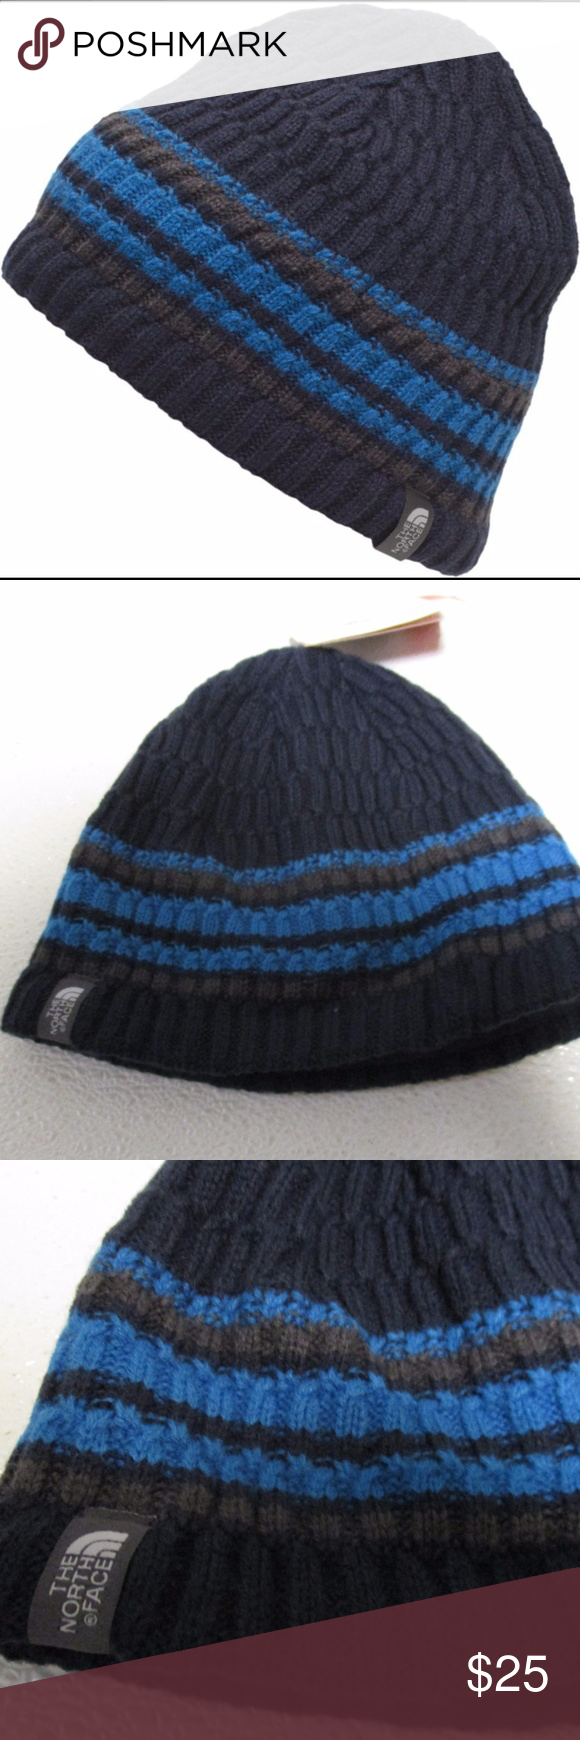 The North Face Blue Beanie Skull cap One size Back with an updated design 0cc3d6b48fb